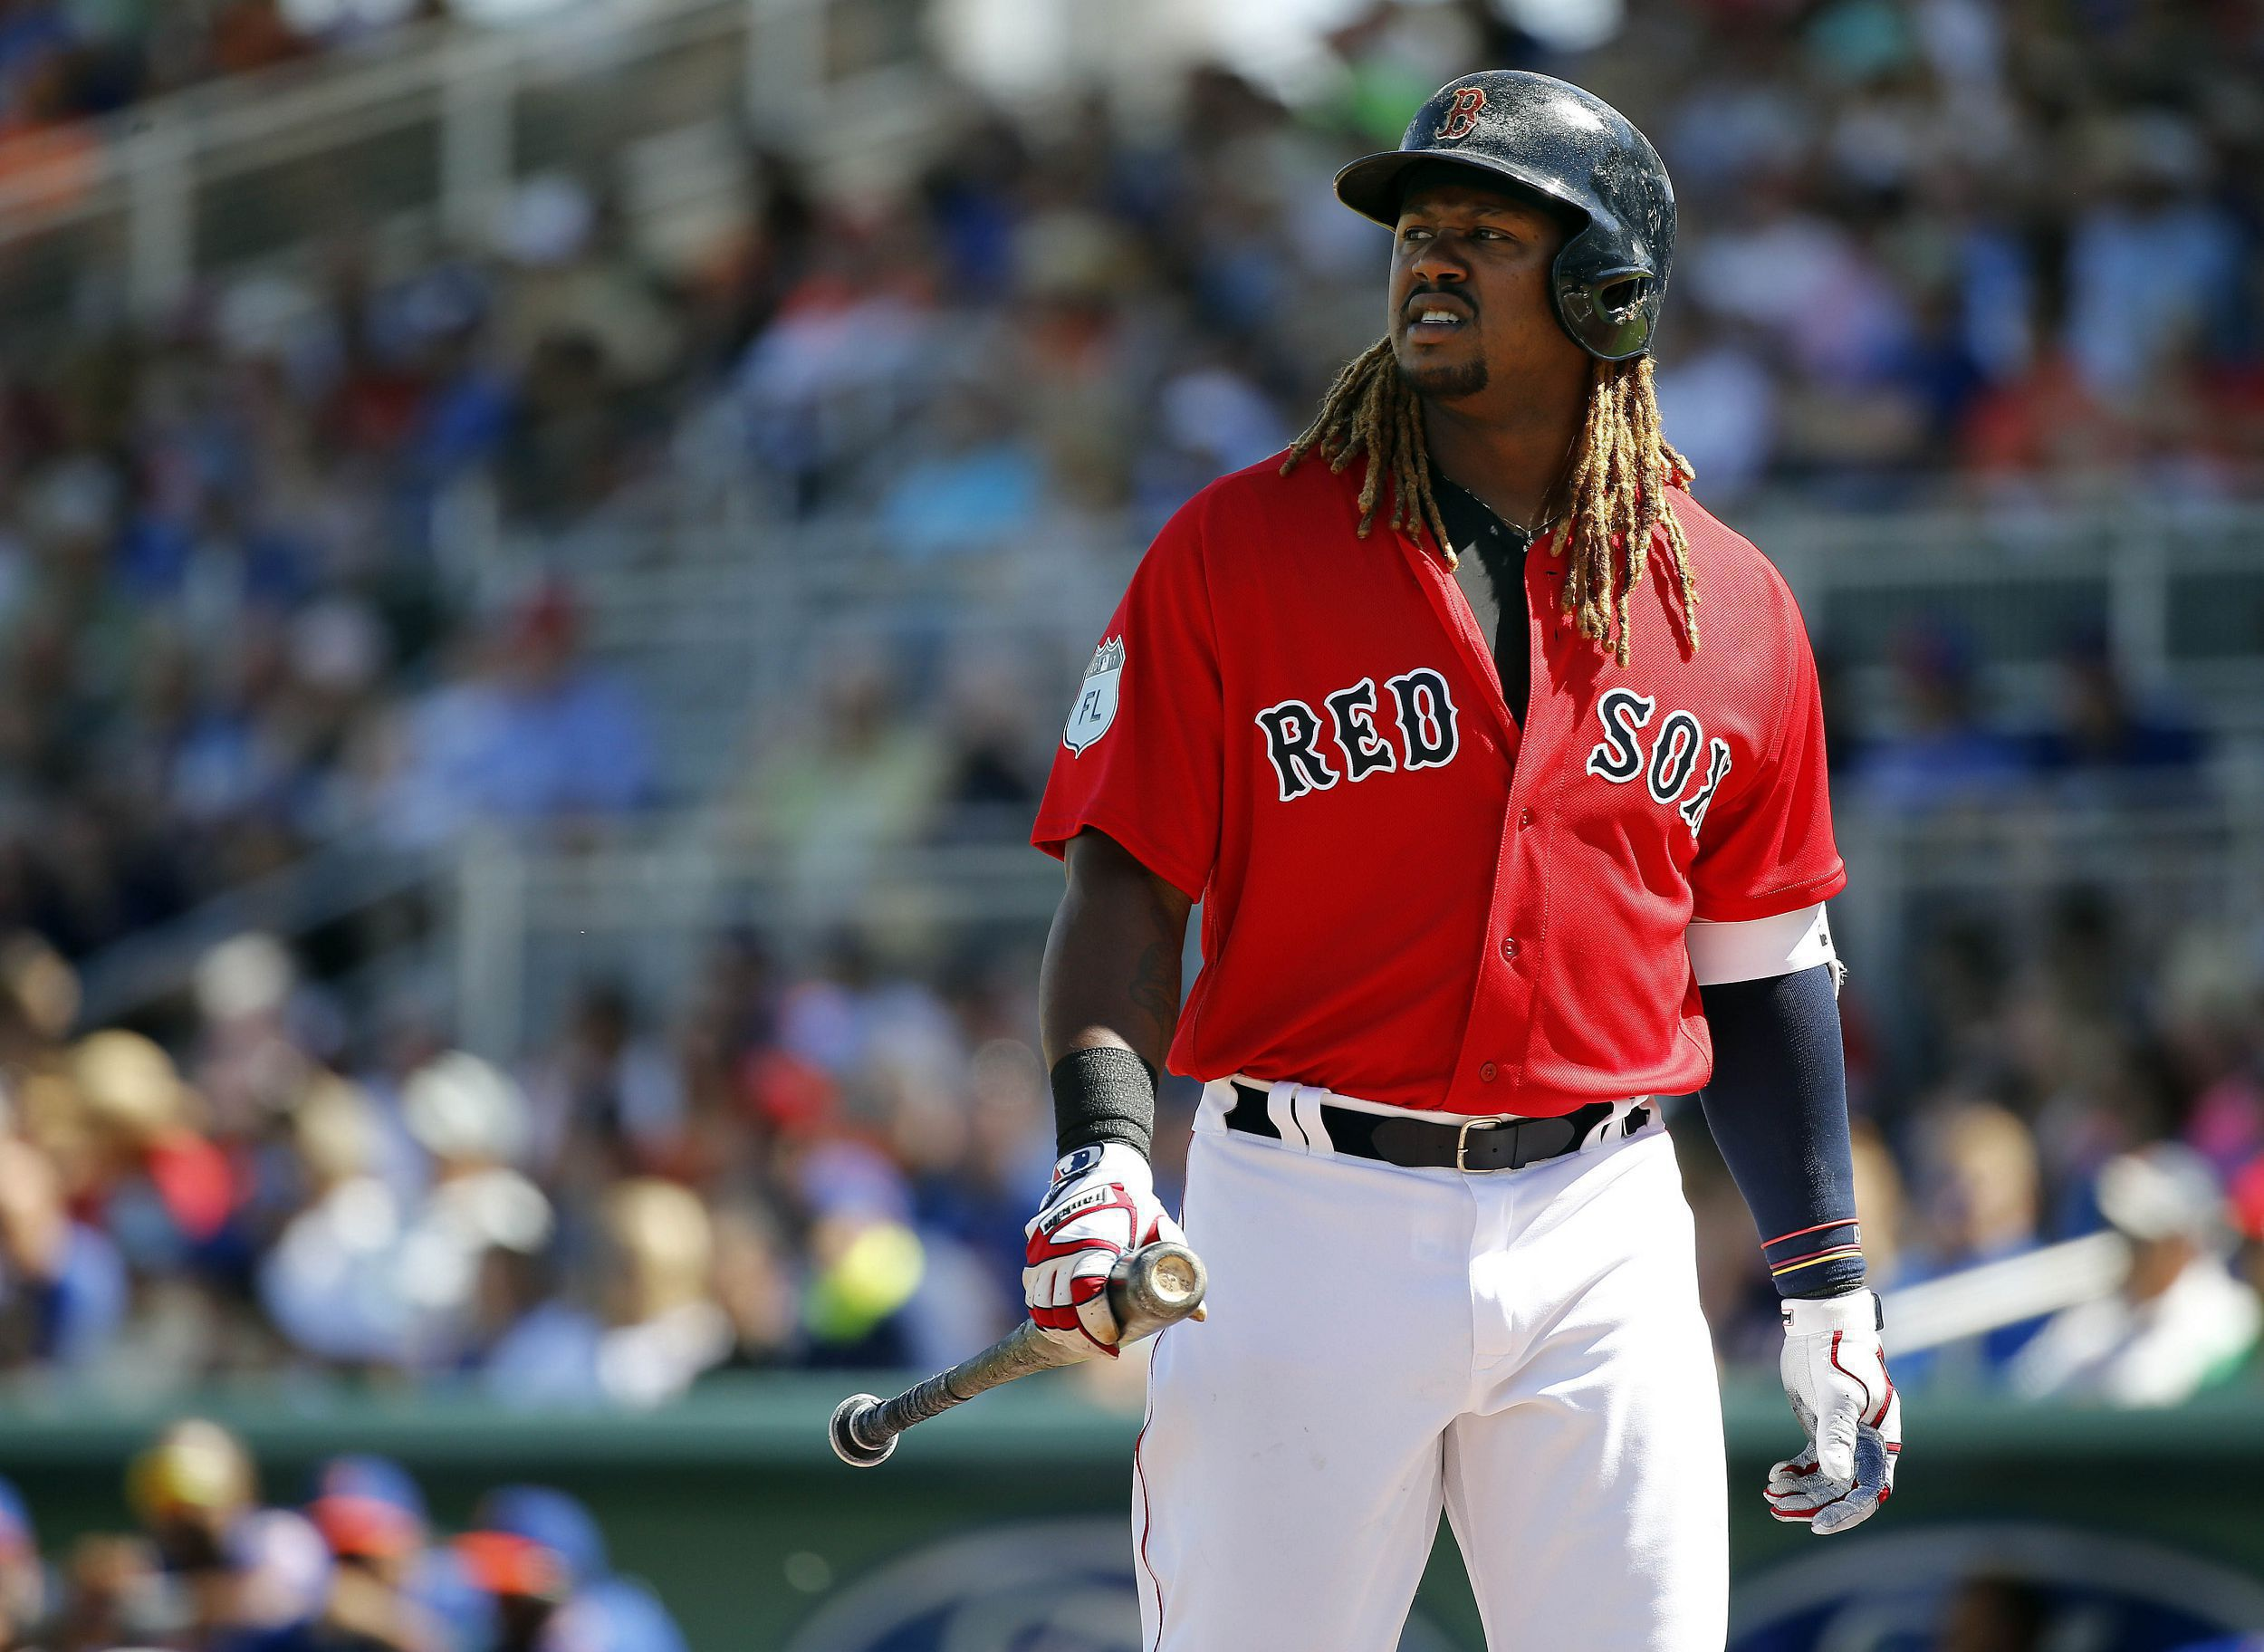 MLB: Spring Training New York Mets At Boston Red Sox